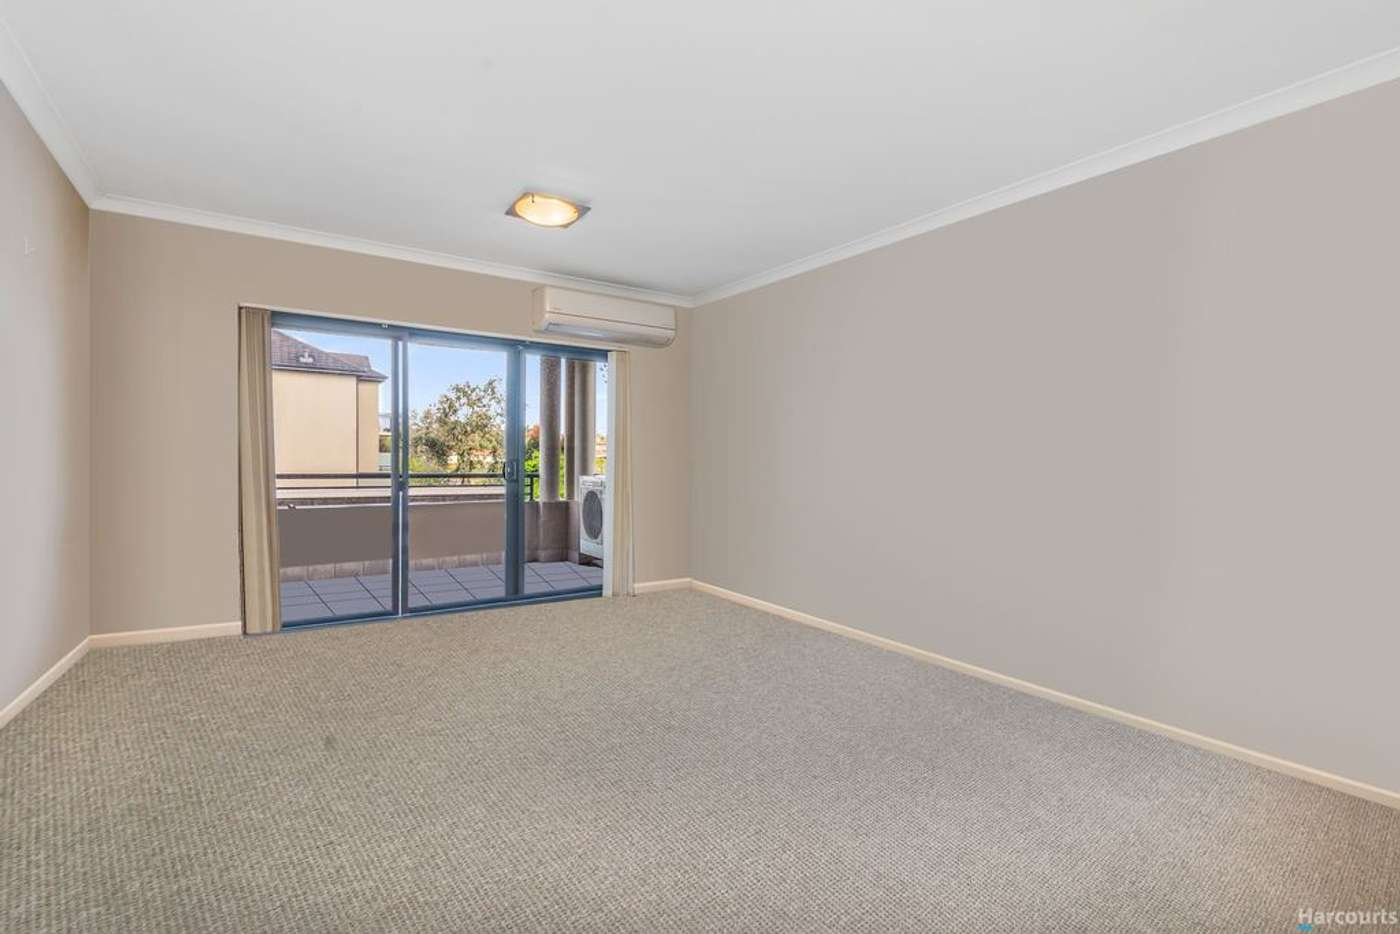 Sixth view of Homely apartment listing, 5/1 Sunlander Drive, Currambine WA 6028